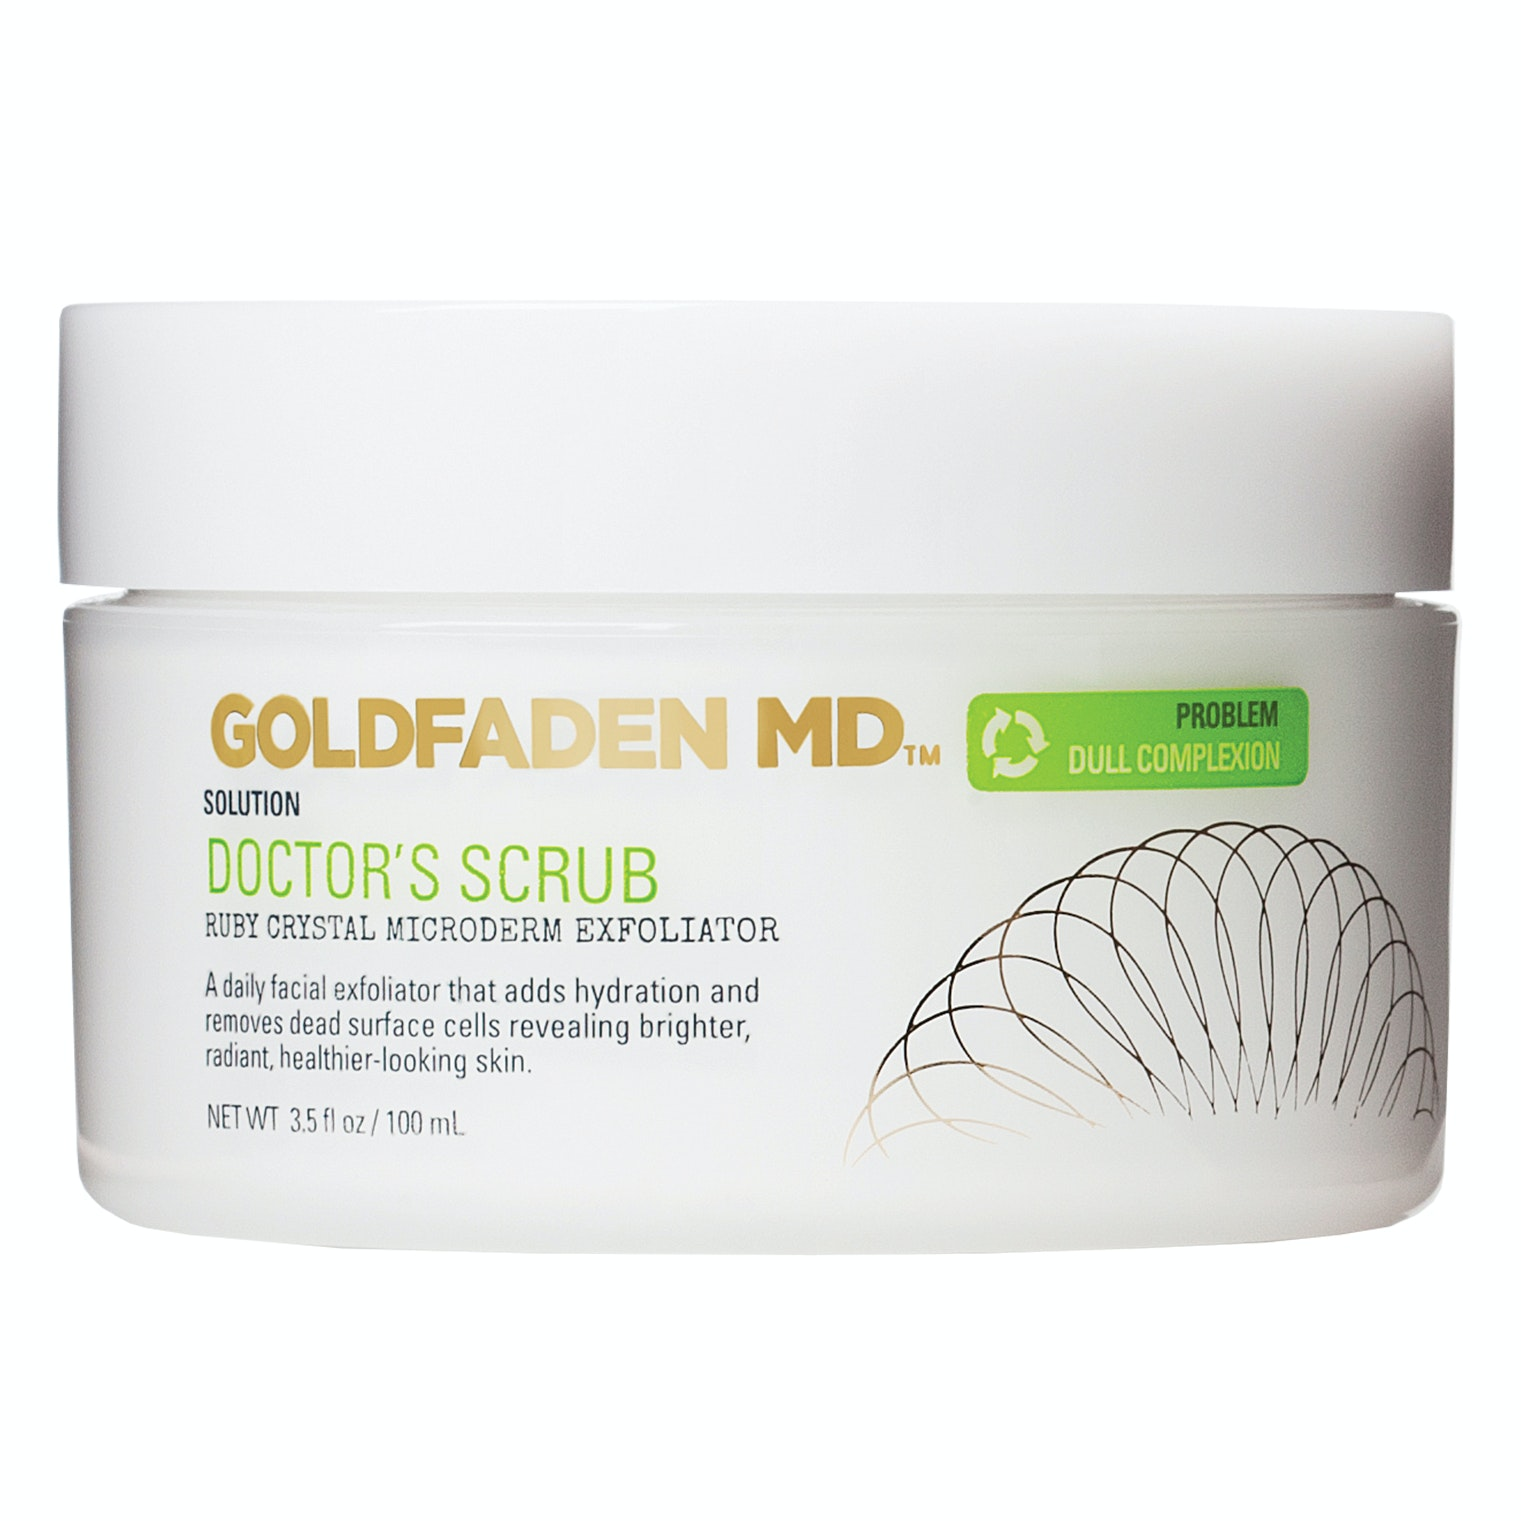 Goldfaden MD® Doctor's Scrub